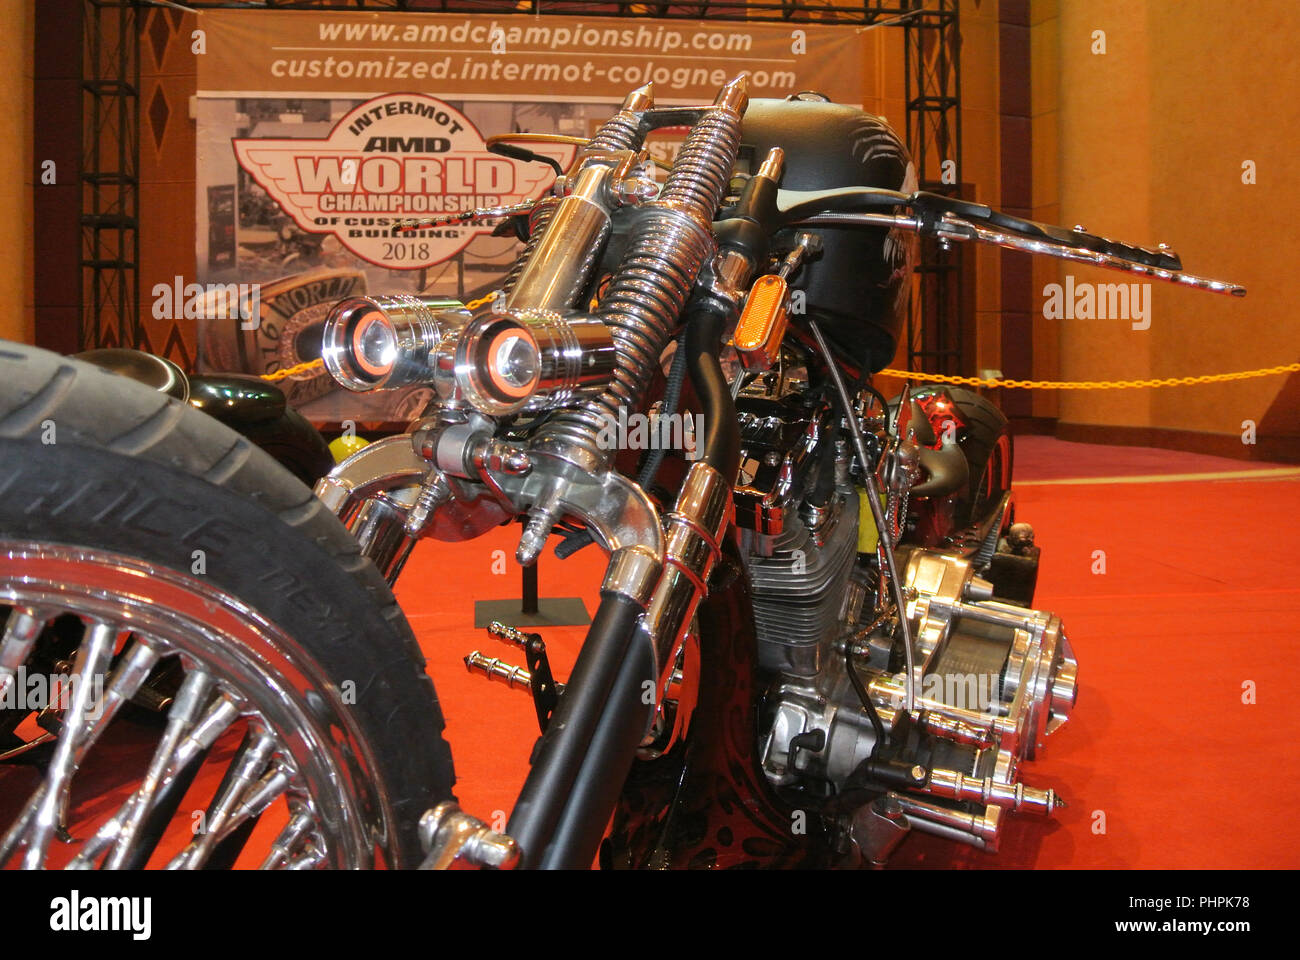 Custom motorcycle. Customized from old motorcycle model by the designer to fulfill their passion and creativity. - Stock Image